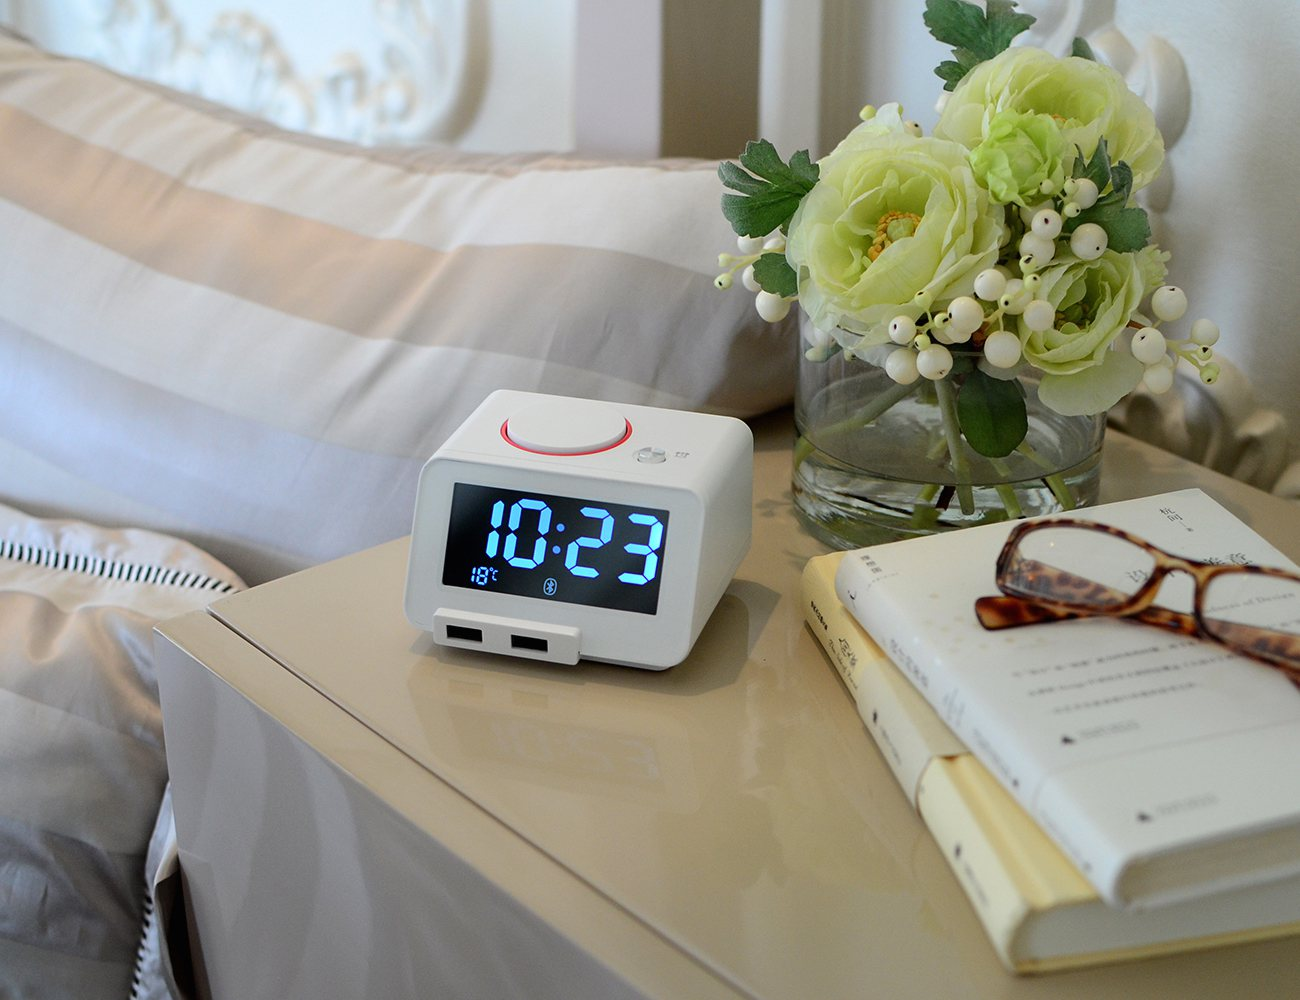 HomTime C1Pro: All-In-One Alarm, Speaker, Charger And More